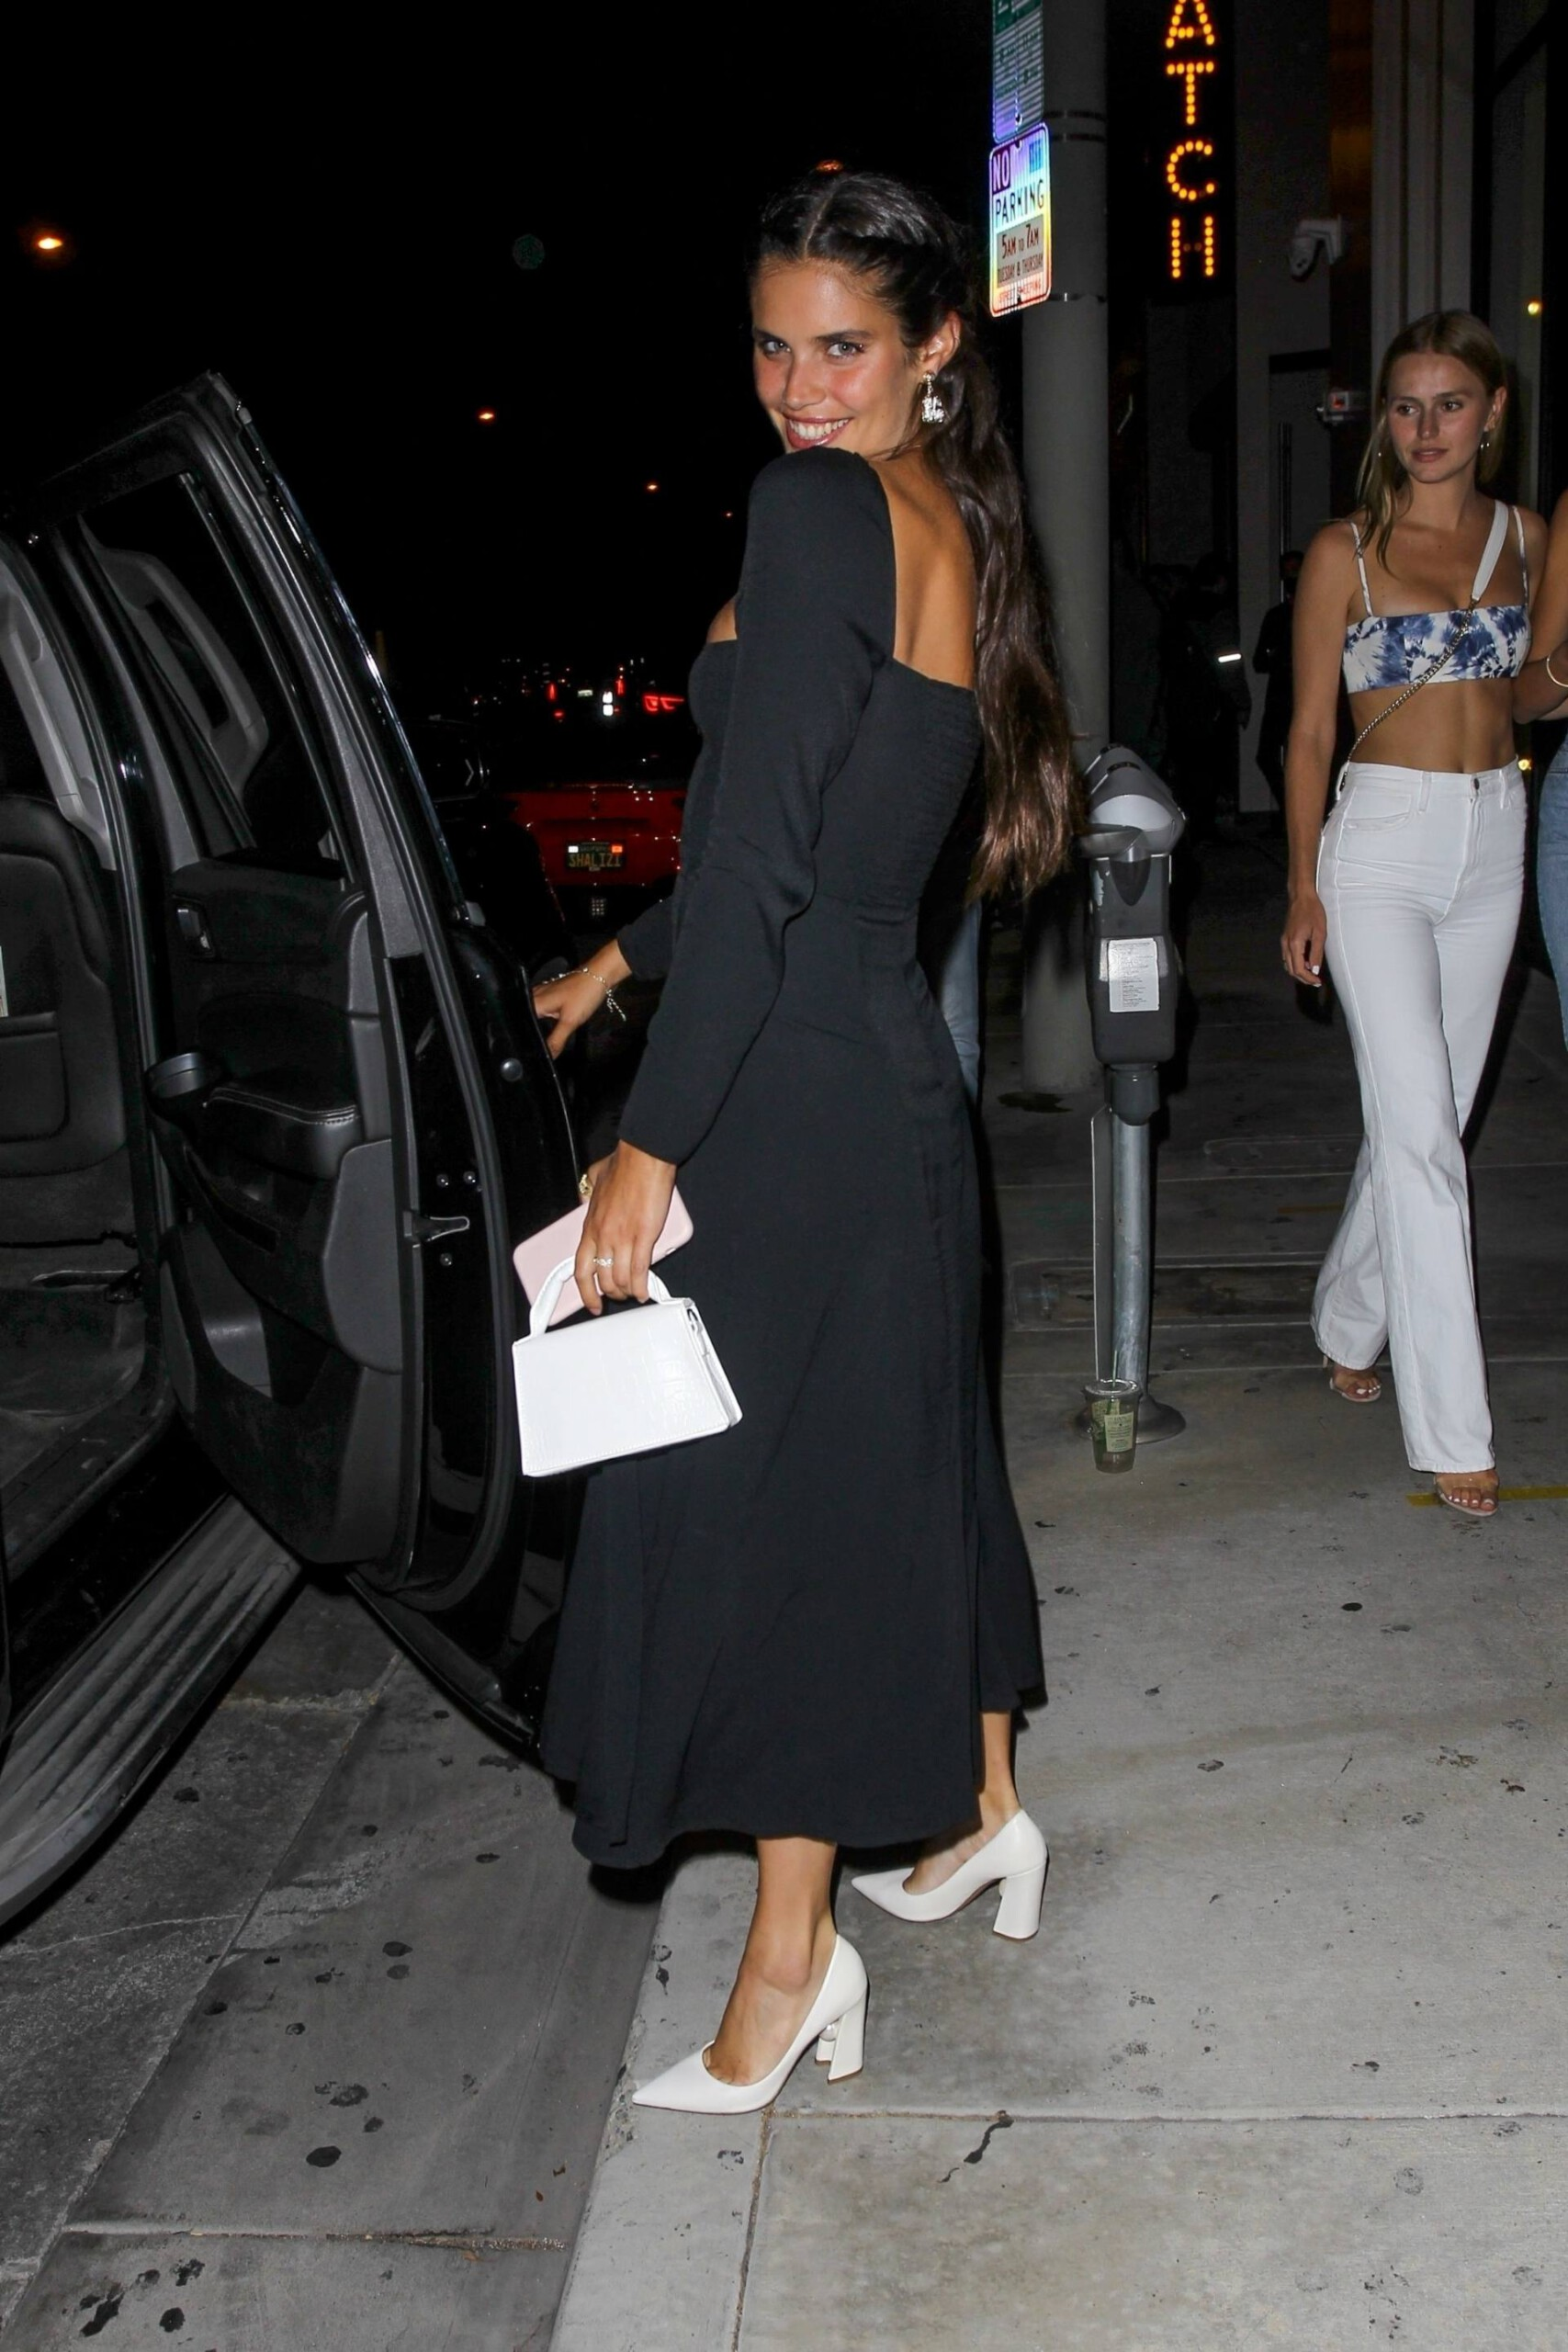 Sara Sampaio – Beautiful In Sexy Black Dress At Catch Restaurant In West Hollywood 0025